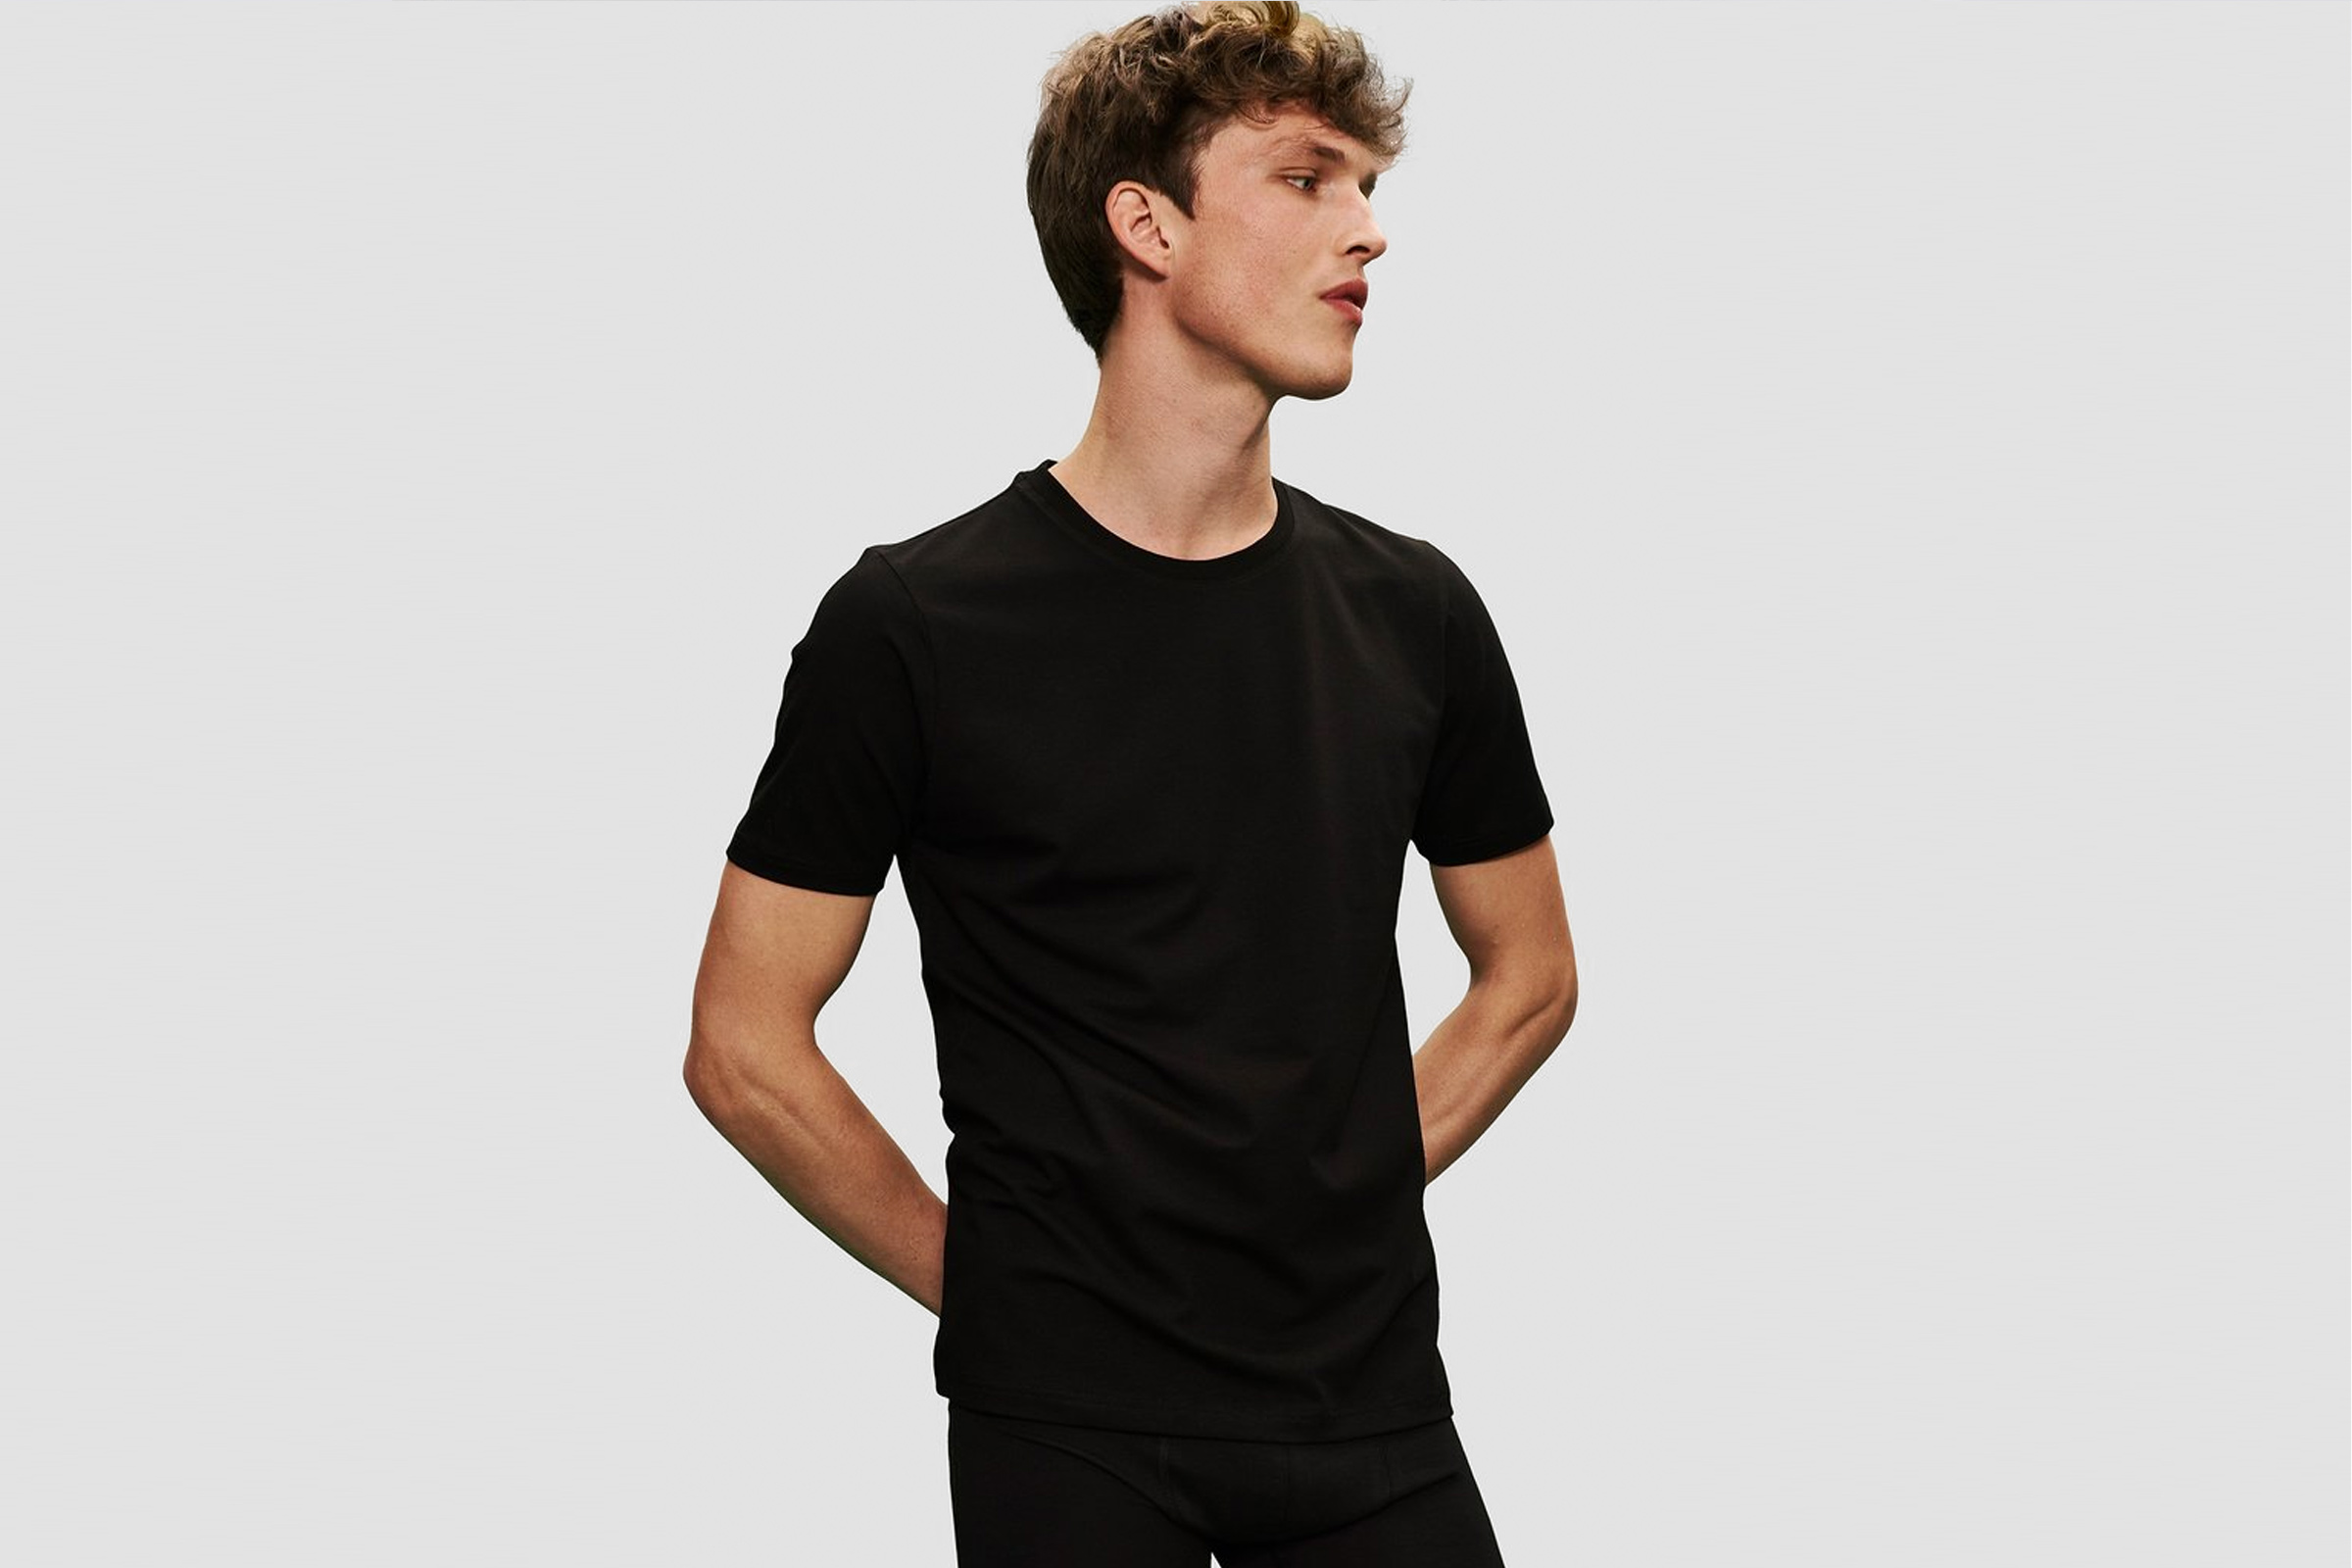 Men's Basic Tees ORGANIC BASICS